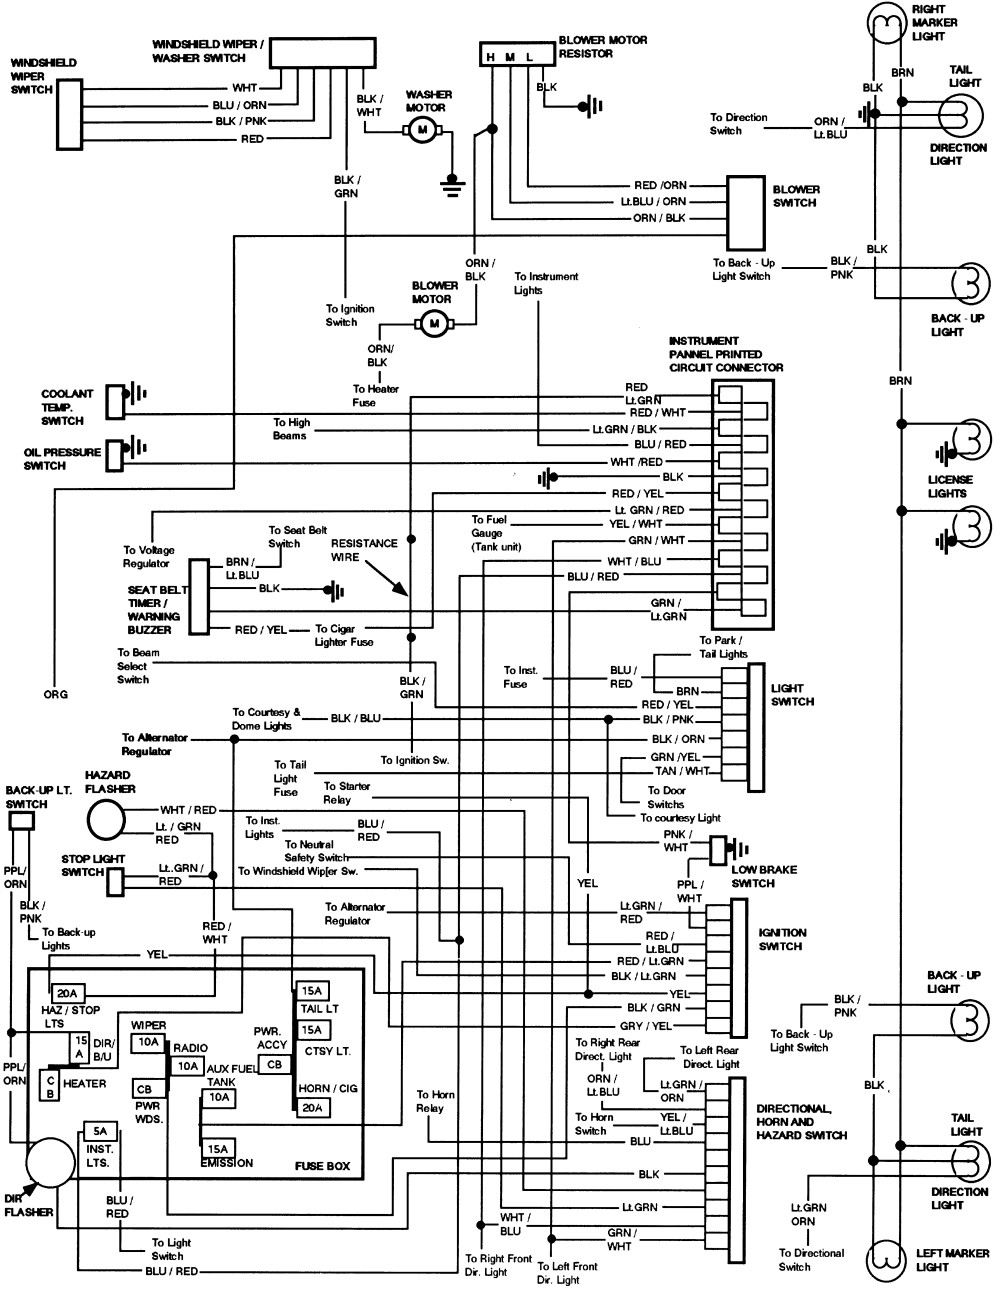 1993 FORD F 250 WIRING DIAGRAM - Auto Electrical Wiring ...